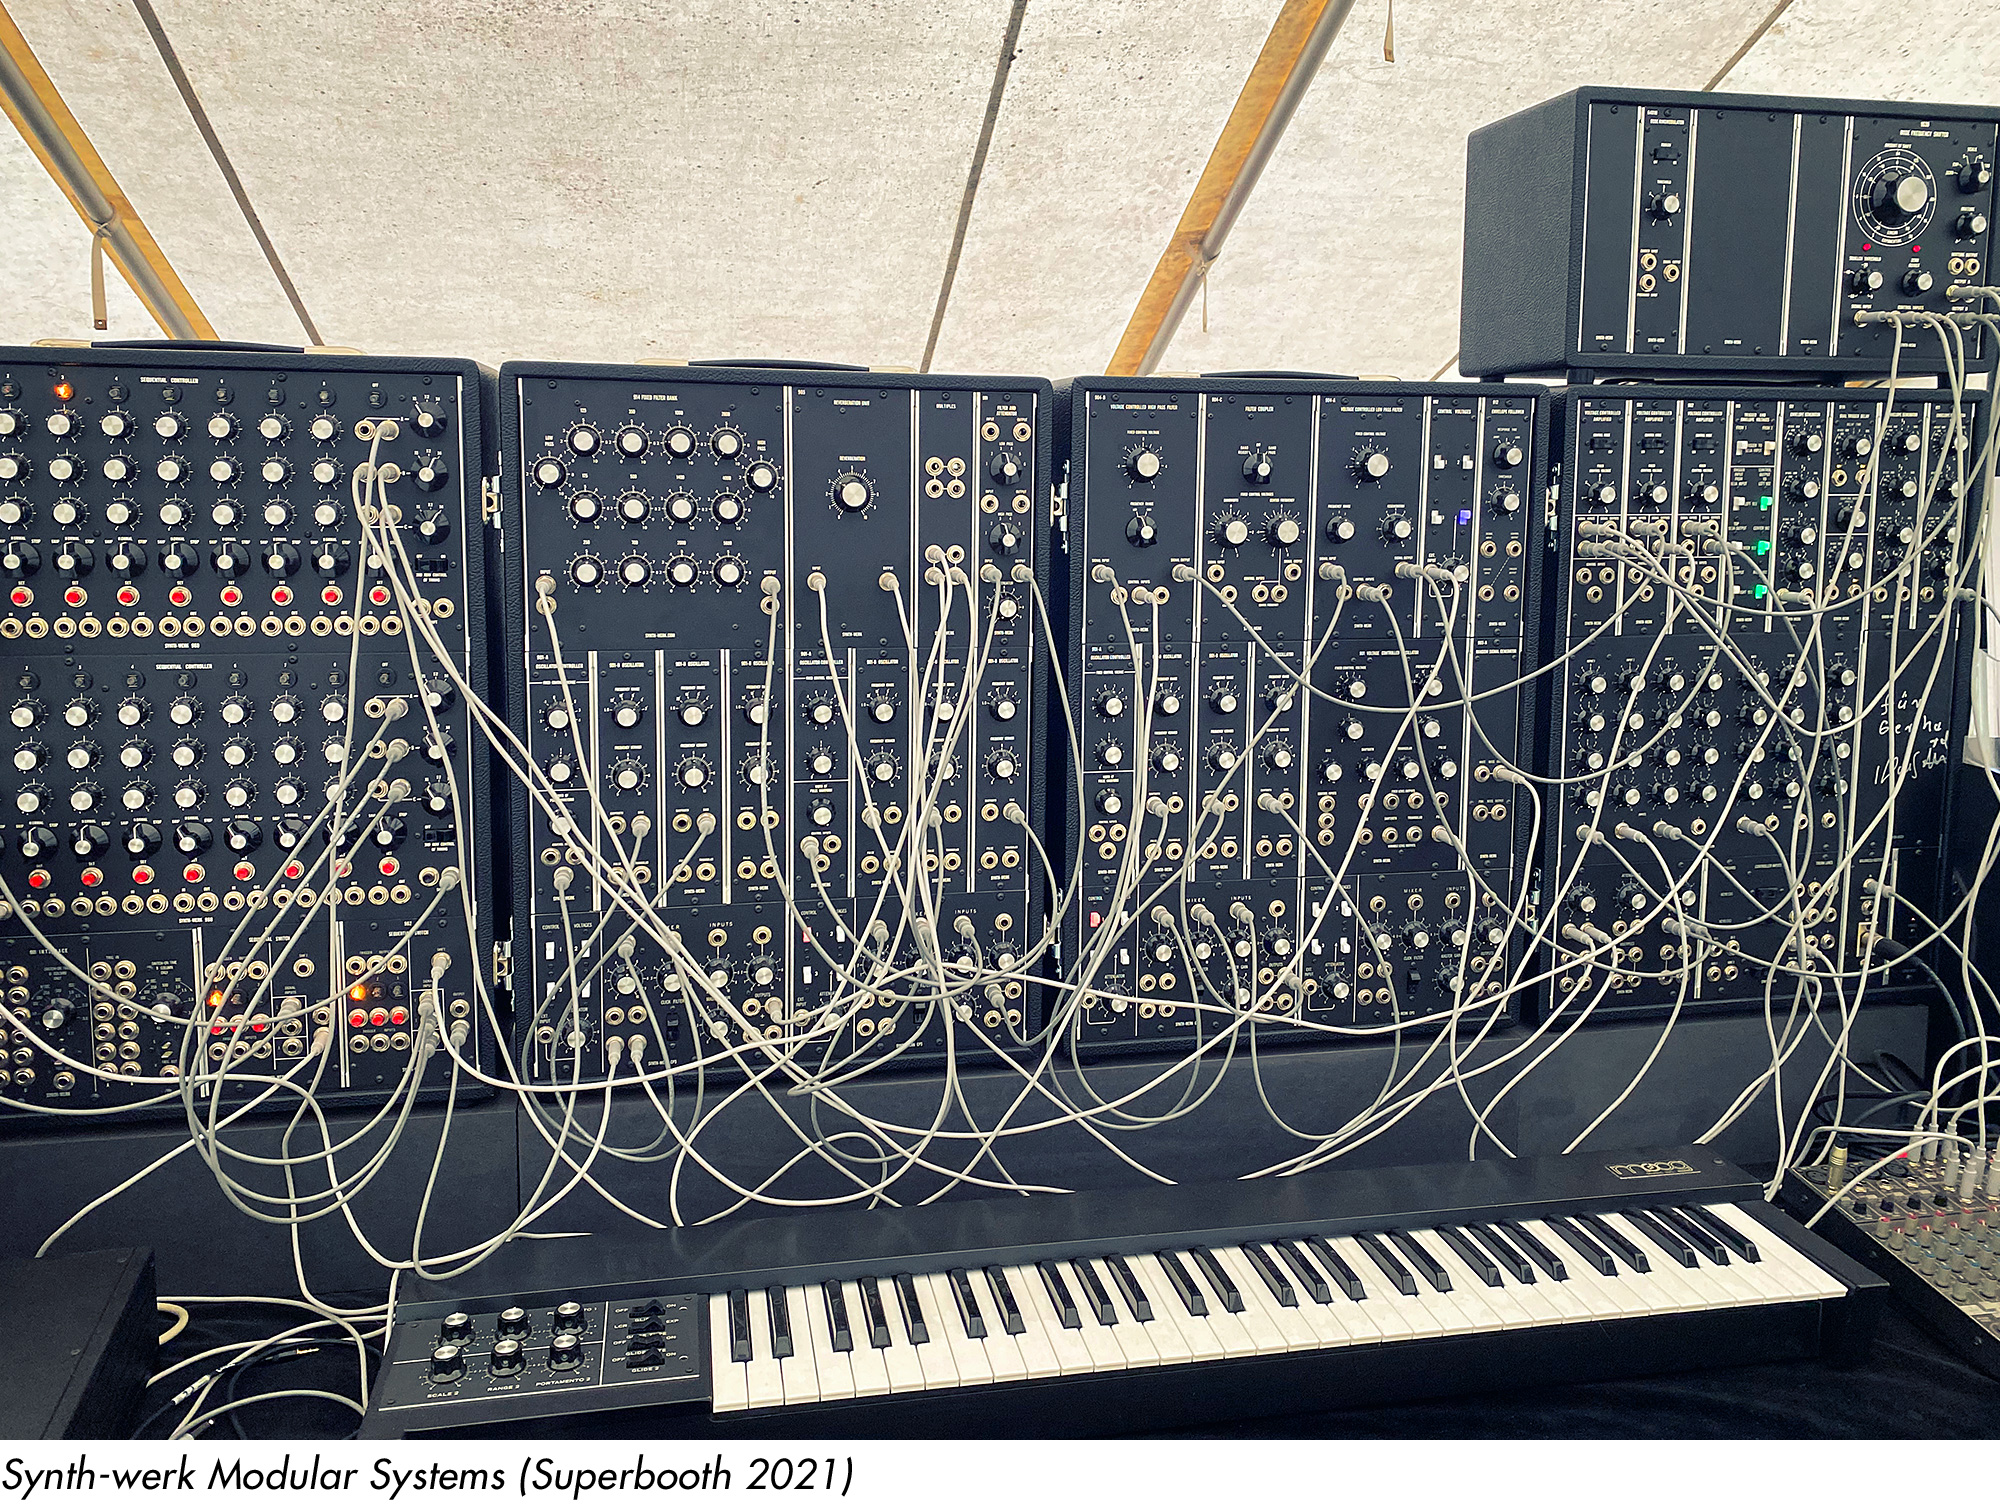 Synth-werk Modular Systems (Superbooth 2021)